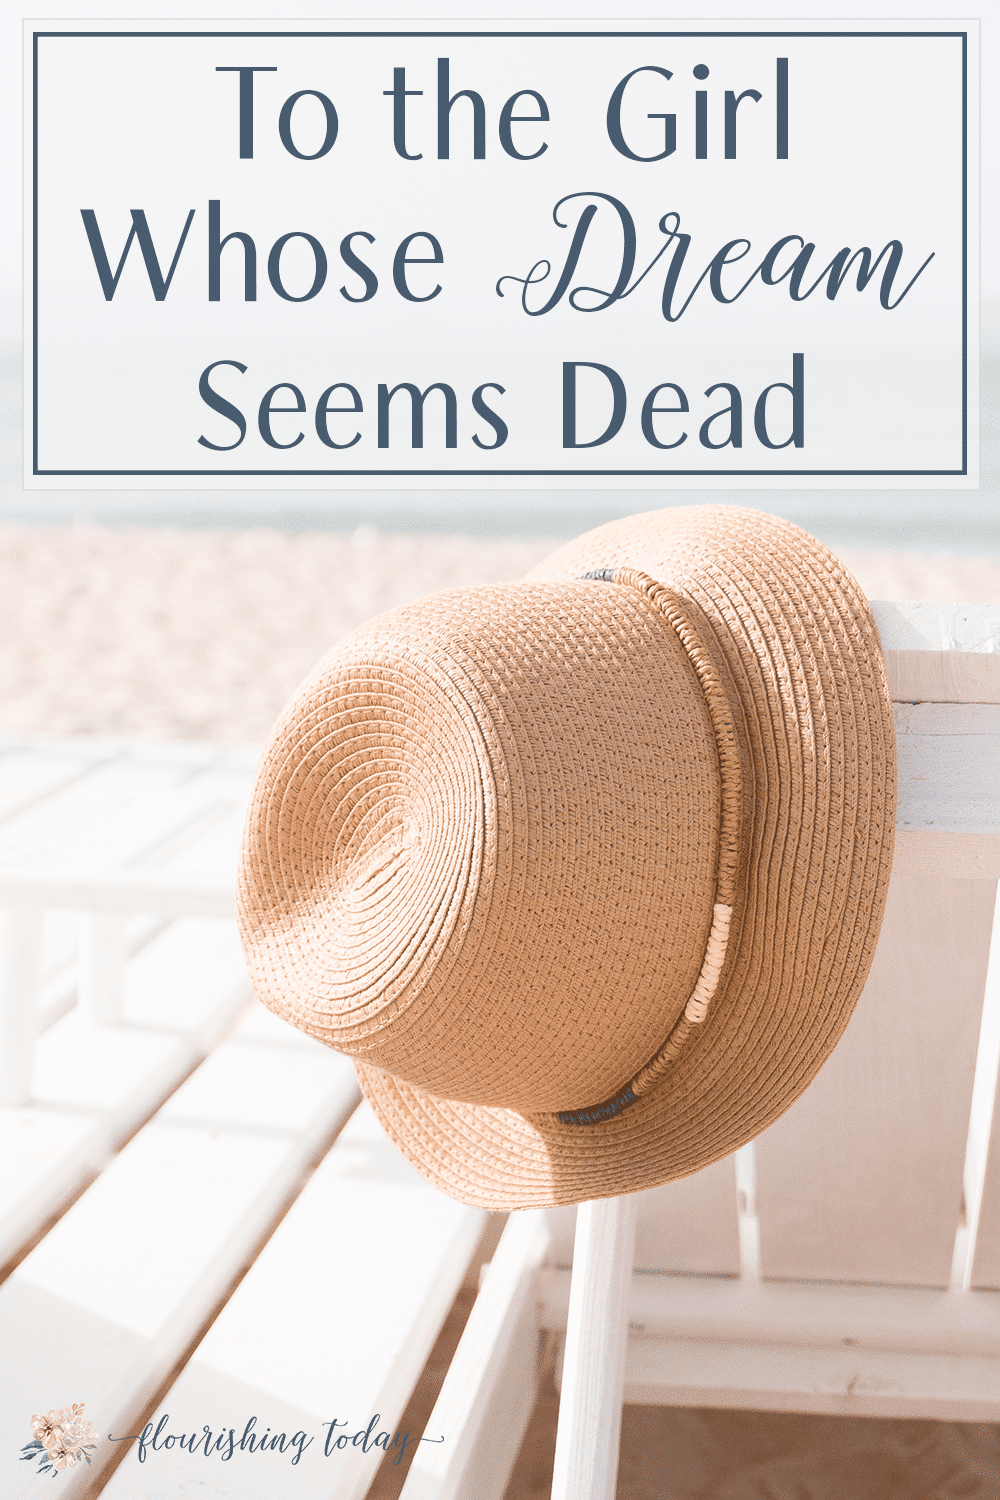 Do your dreams seem dead? You've been waiting and are on the verge of giving up? Here are some tips on how to respond to your dead dreams.